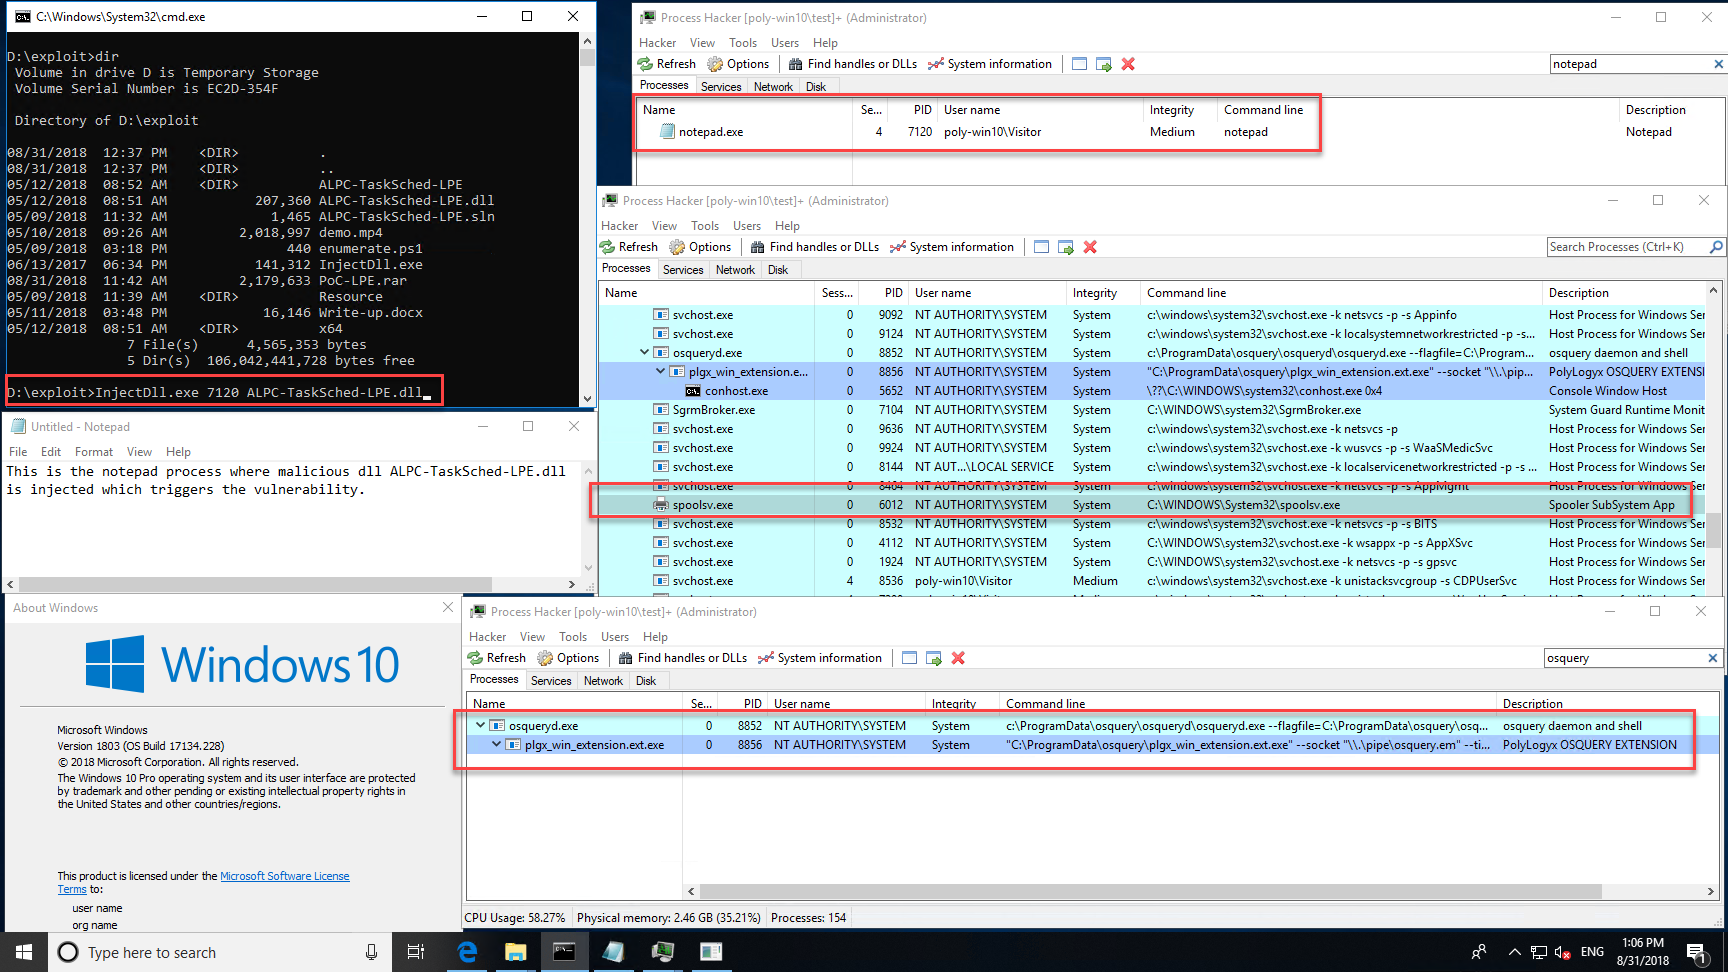 Windows 10 EoP — osquery and PolyLogyx to the rescue